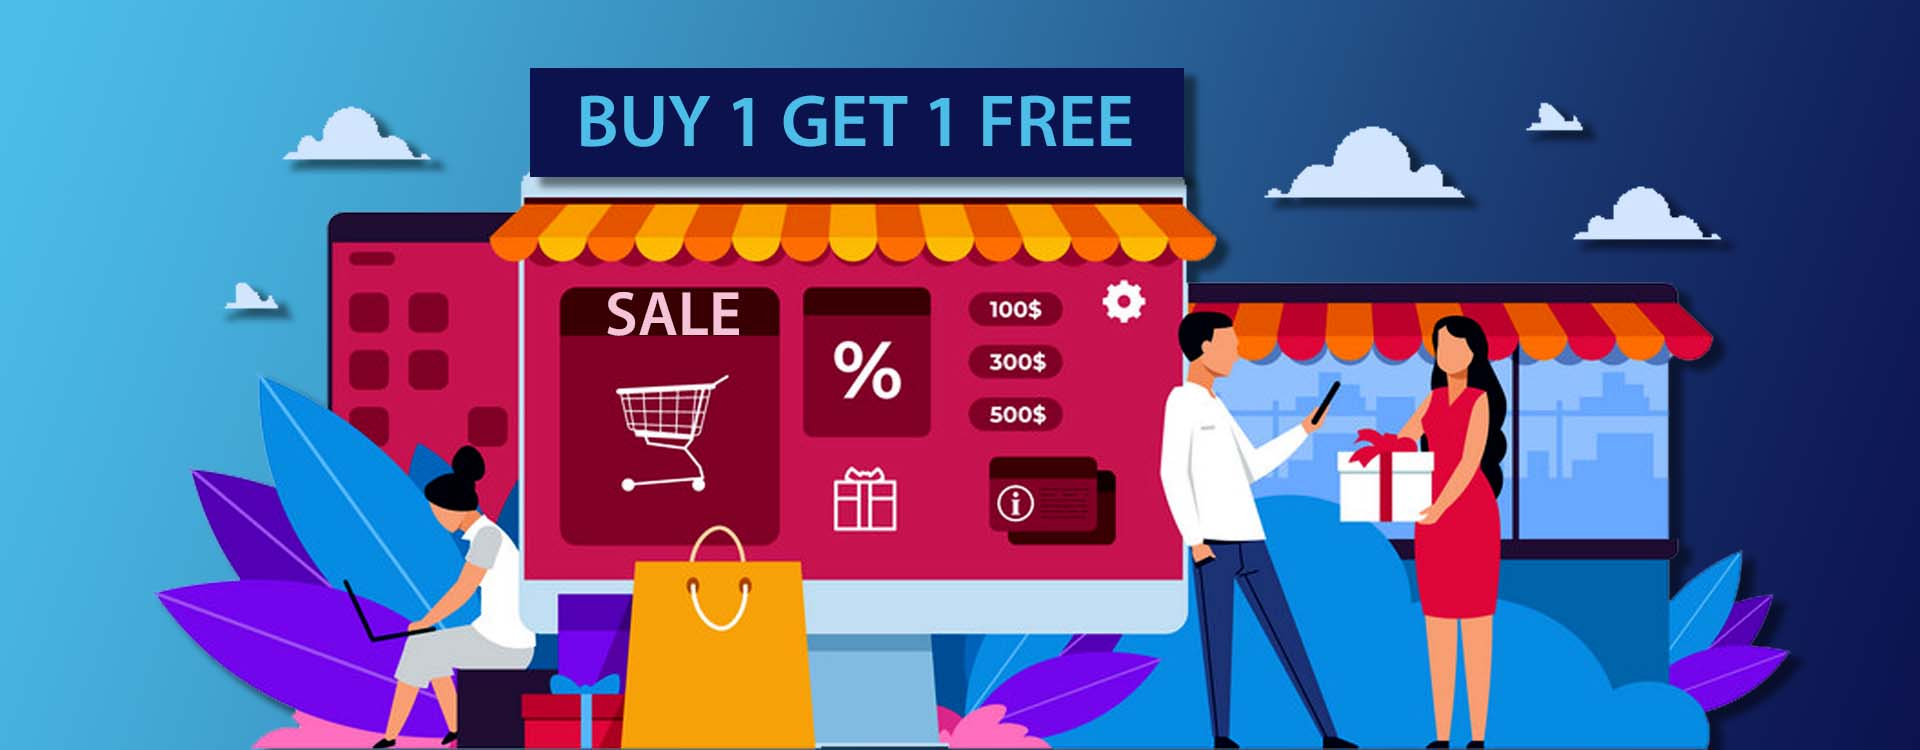 Buy One Give One Free BOGO Retail in India